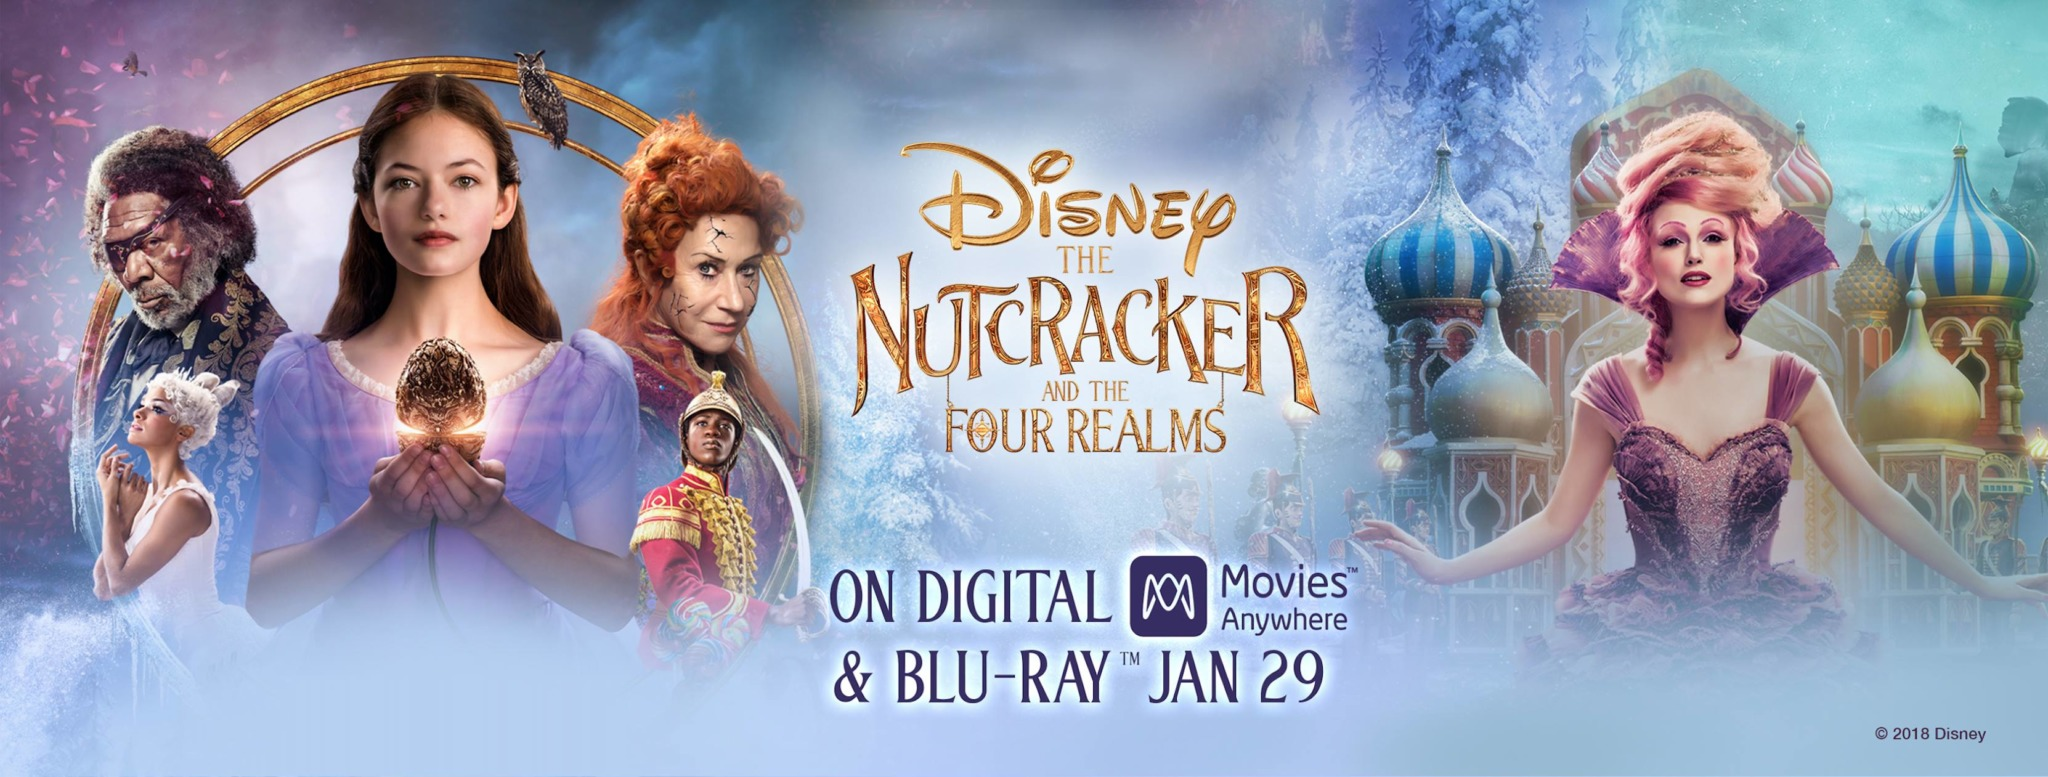 Disneys Nutcracker and the Four Realms